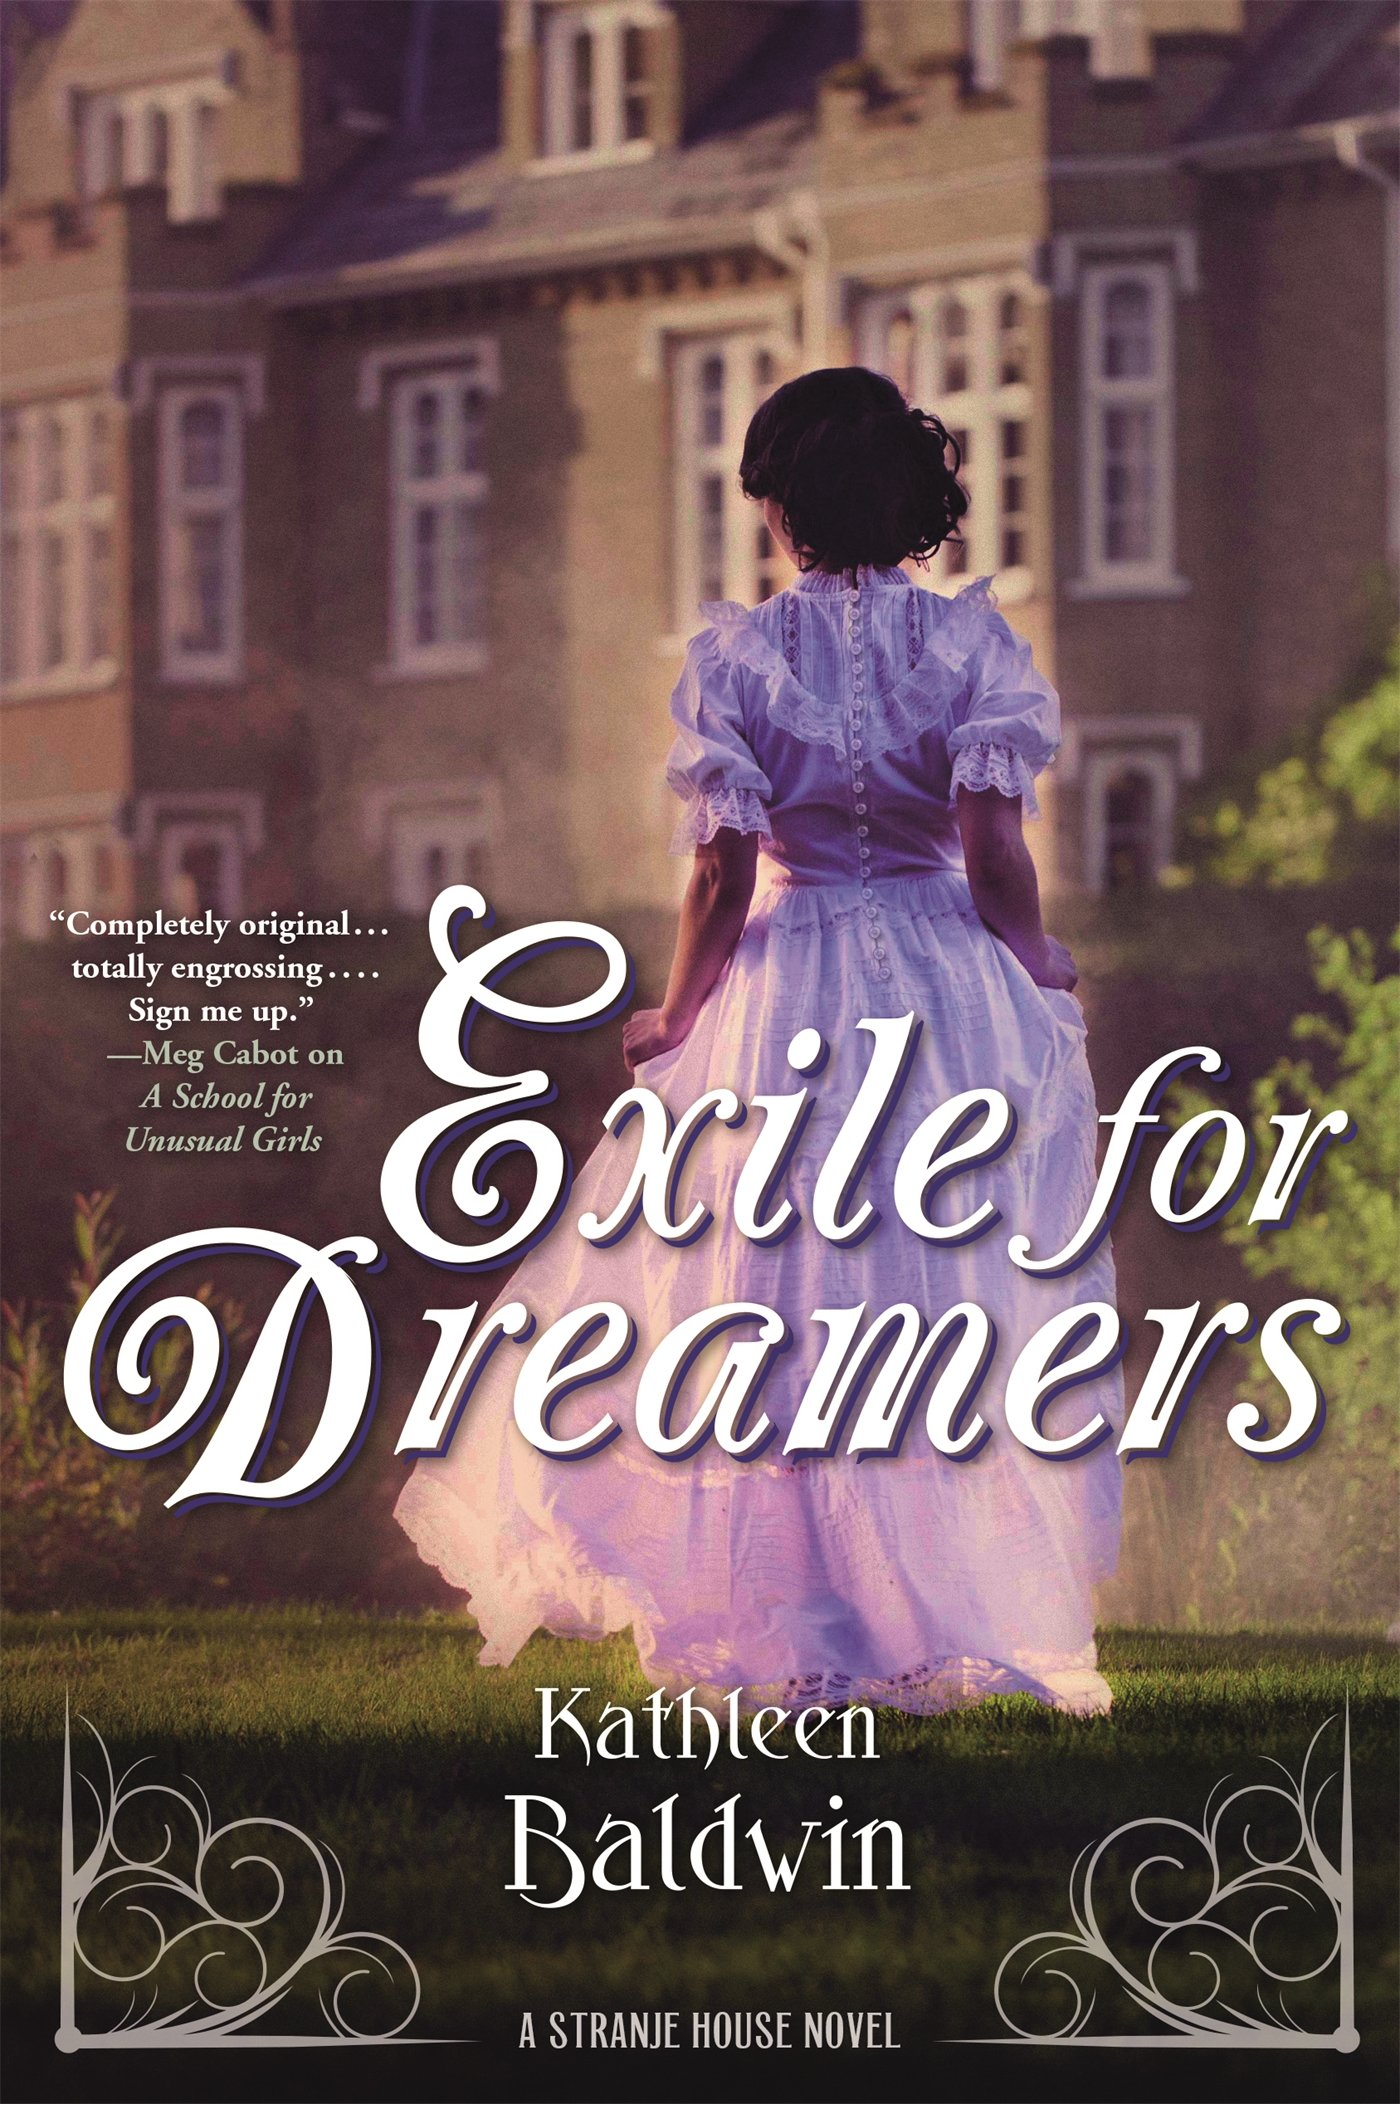 Image result for exile for dreamers kathleen baldwin book